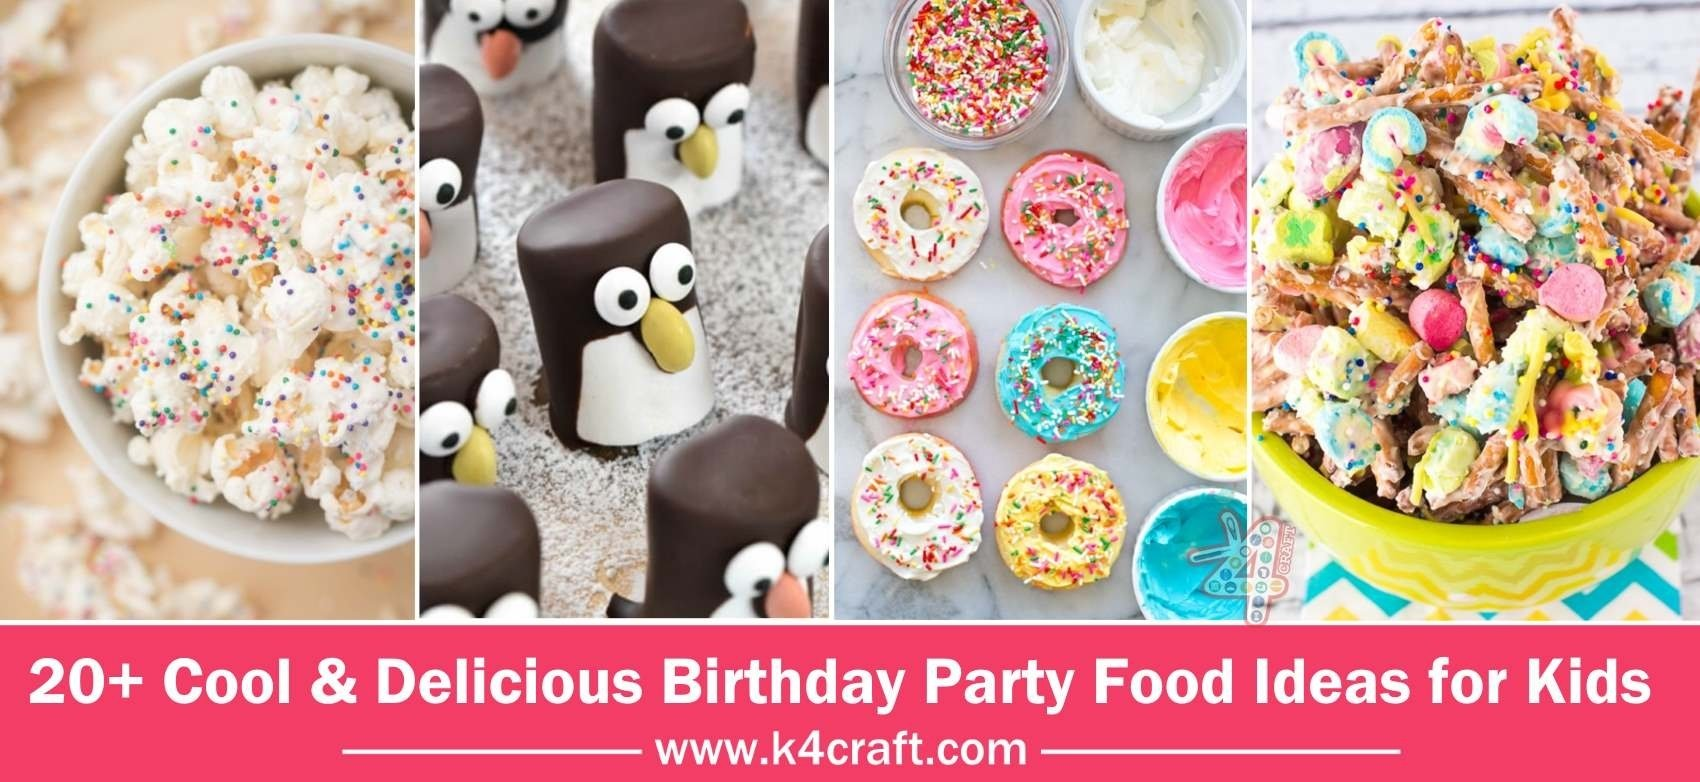 10 Wonderful Bake Sale Ideas For Kids cool delicious birthday party food ideas for kids k4 craft 1 2020